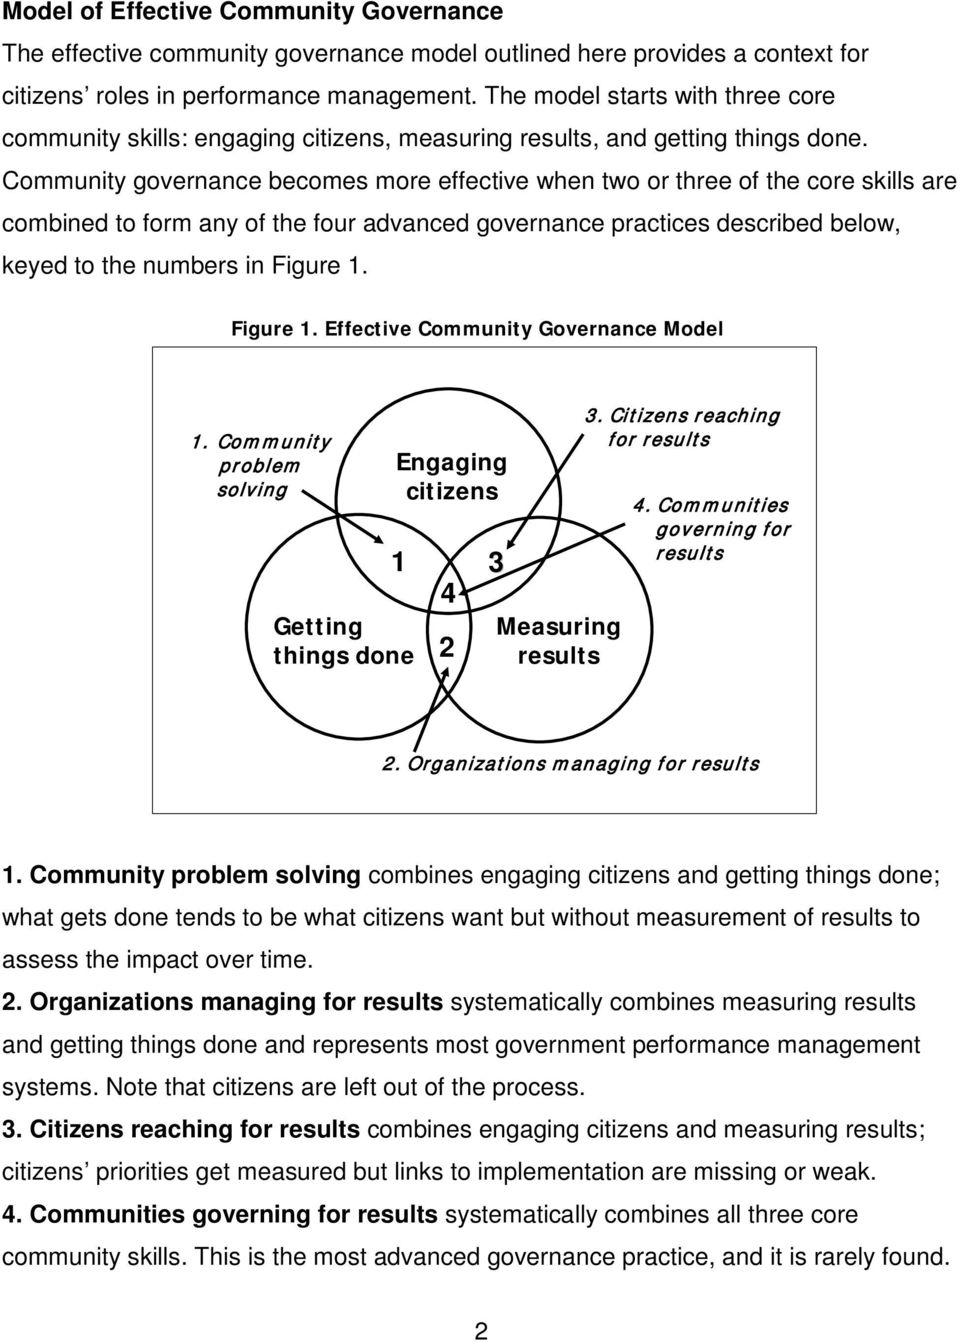 Community governance becomes more effective when two or three of the core skills are combined to form any of the four advanced governance practices described below, keyed to the numbers in Figure 1.